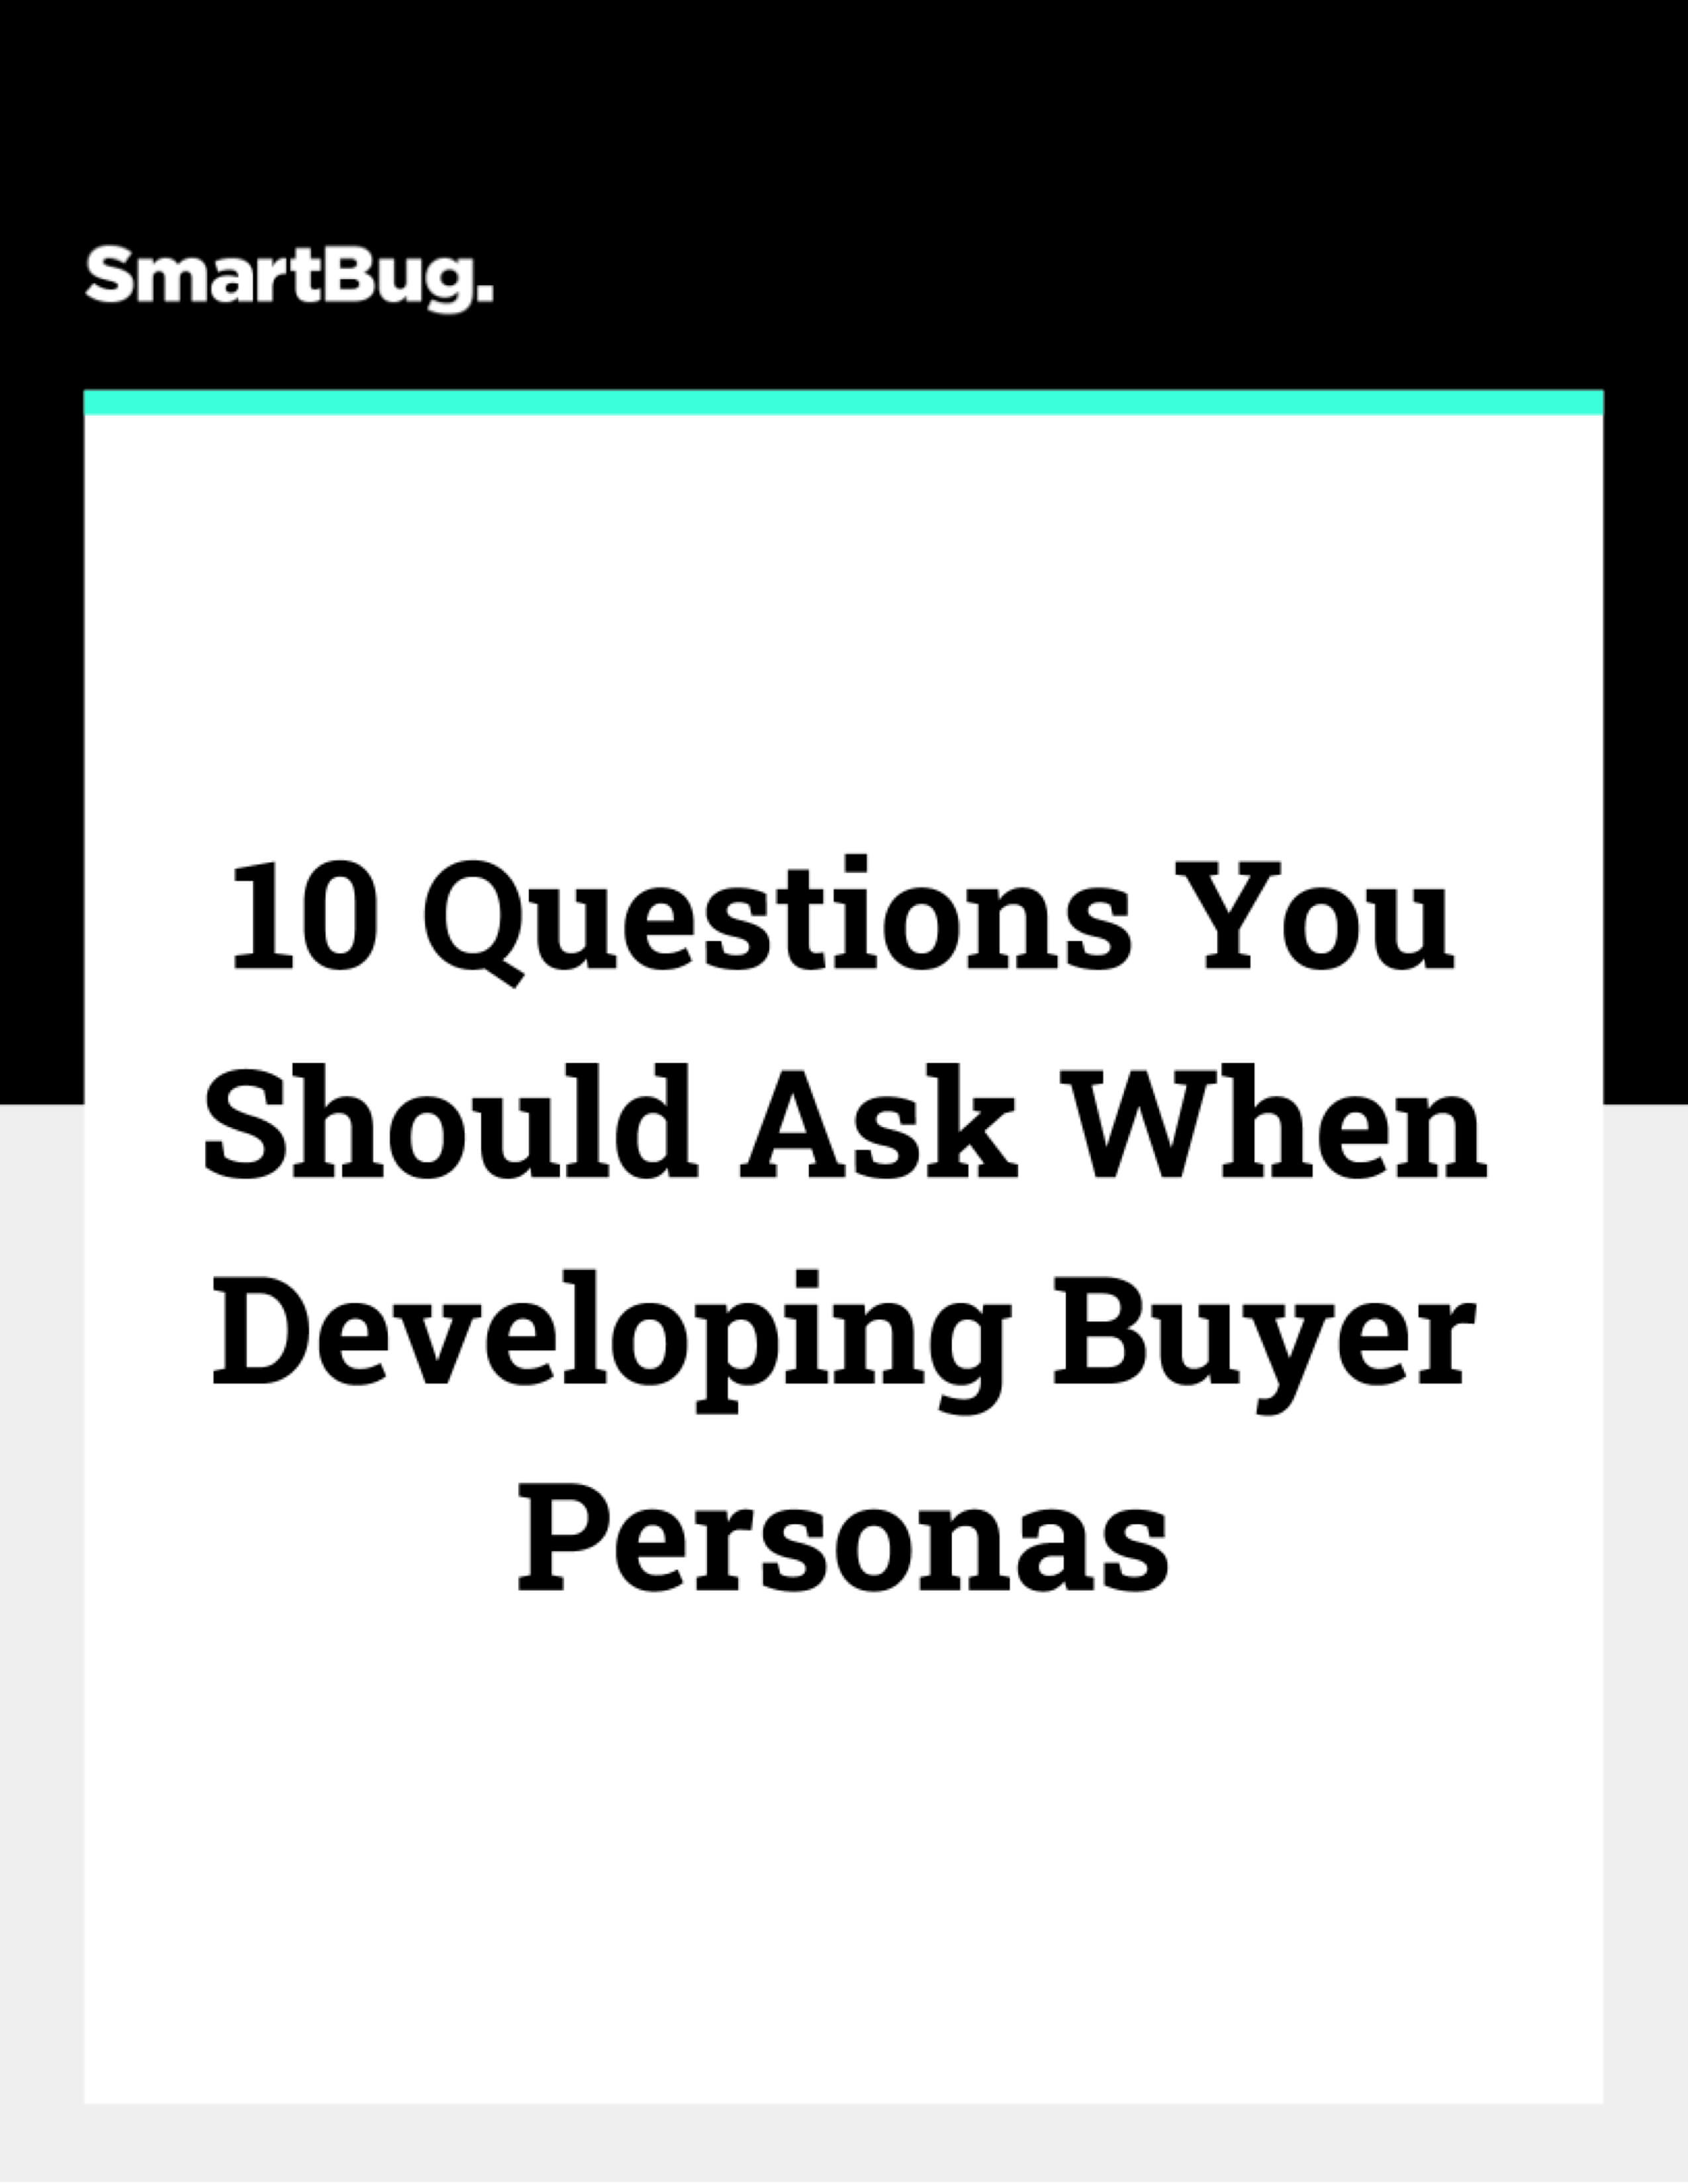 p1 10 Questions You Should Ask When Developing Buyer Personas